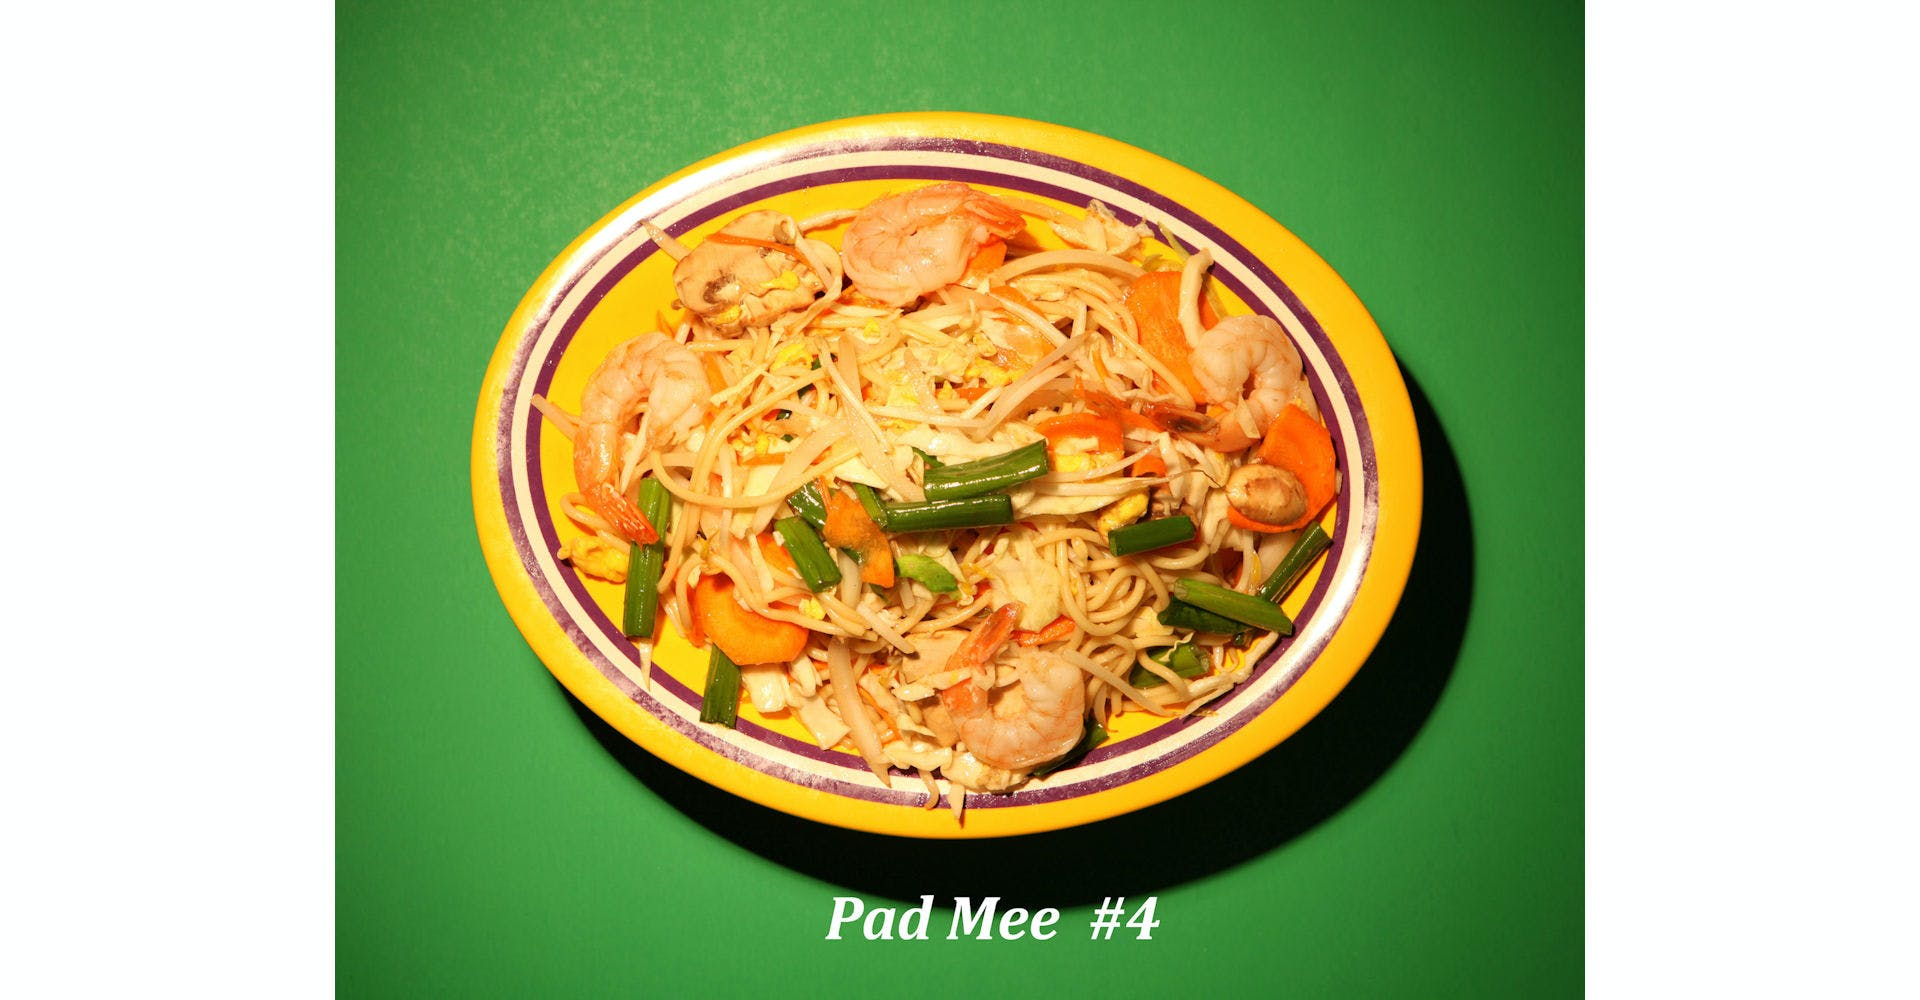 4. Pad Mee from Narin's Thai Kitchen in Green Bay, WI